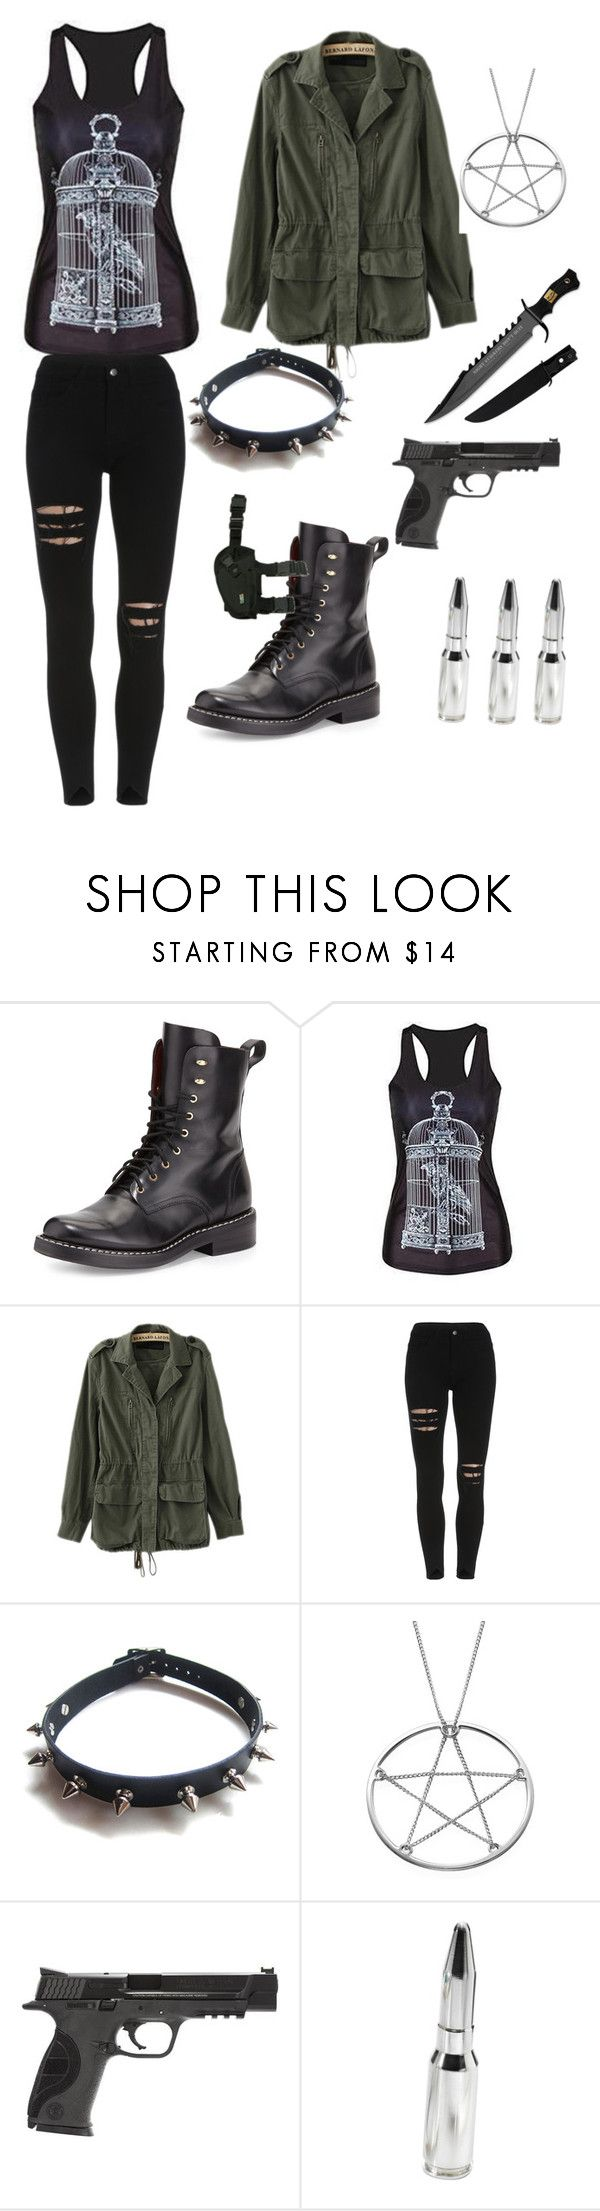 """hunting outfit (supernatural)"" by stargazer9001 ❤ liked on Polyvore featuring rag & bone, Omifa, WithChic, Smith & Wesson, Holster and Cartier"